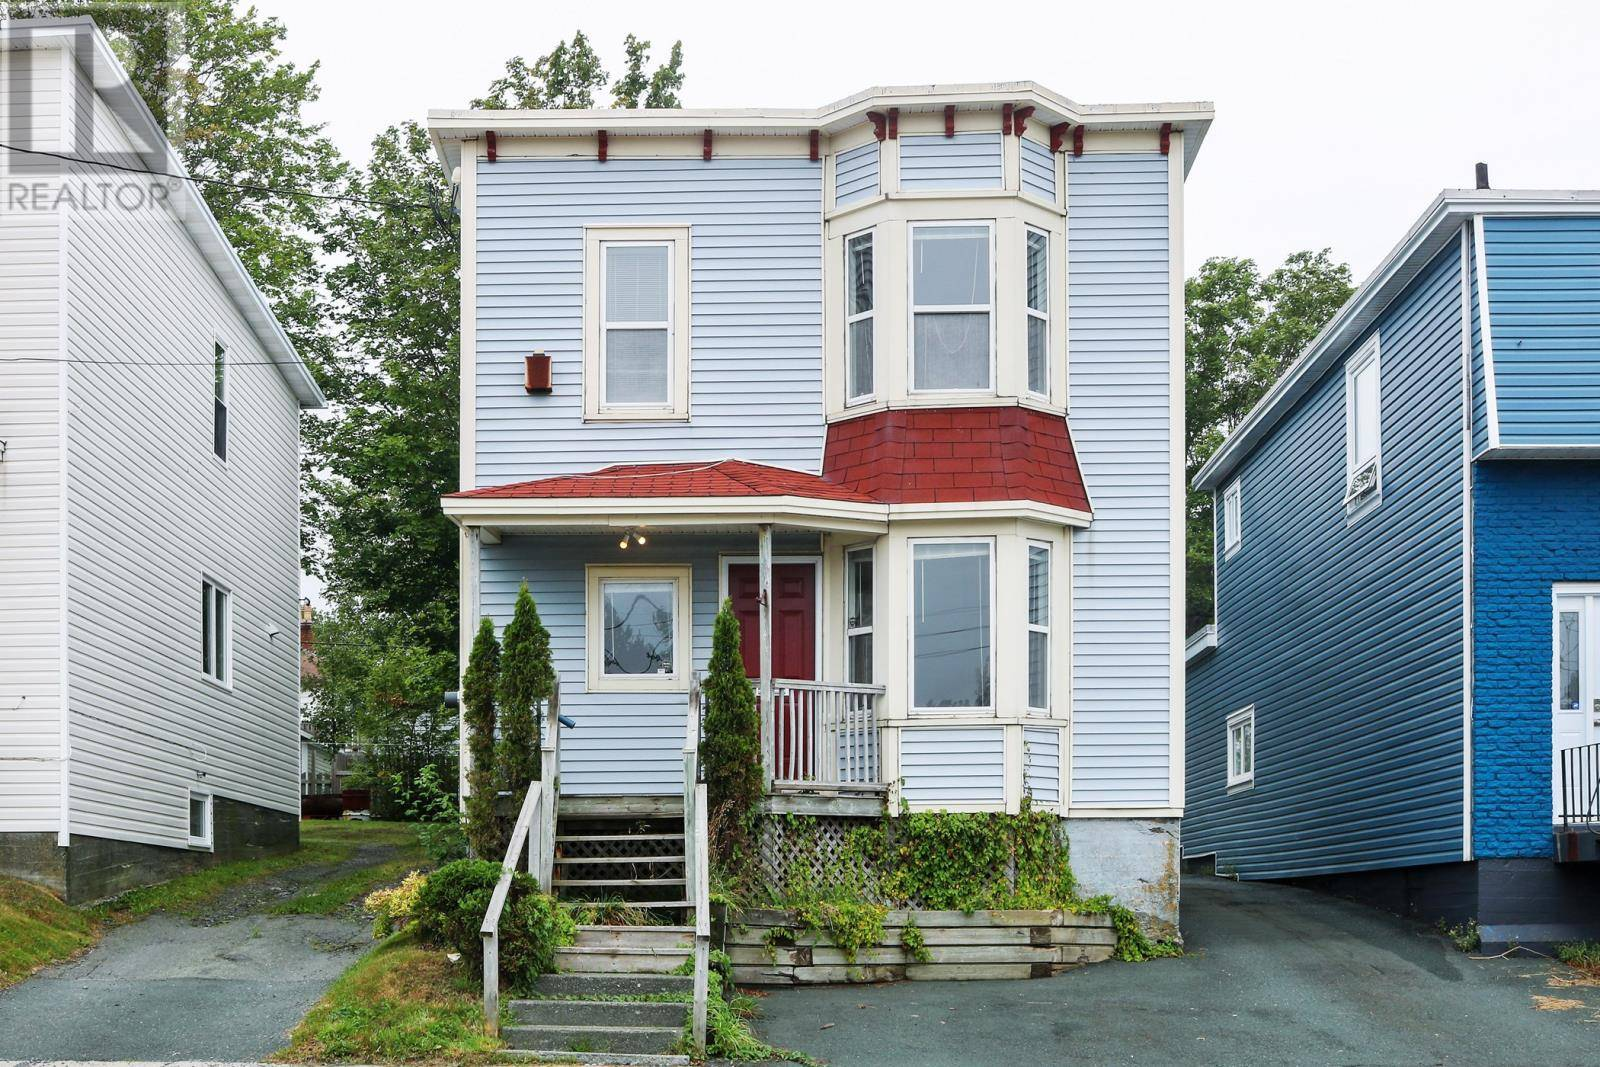 Home for sale at 292 Lemarchant Rd St. John's Newfoundland - MLS: 1201181